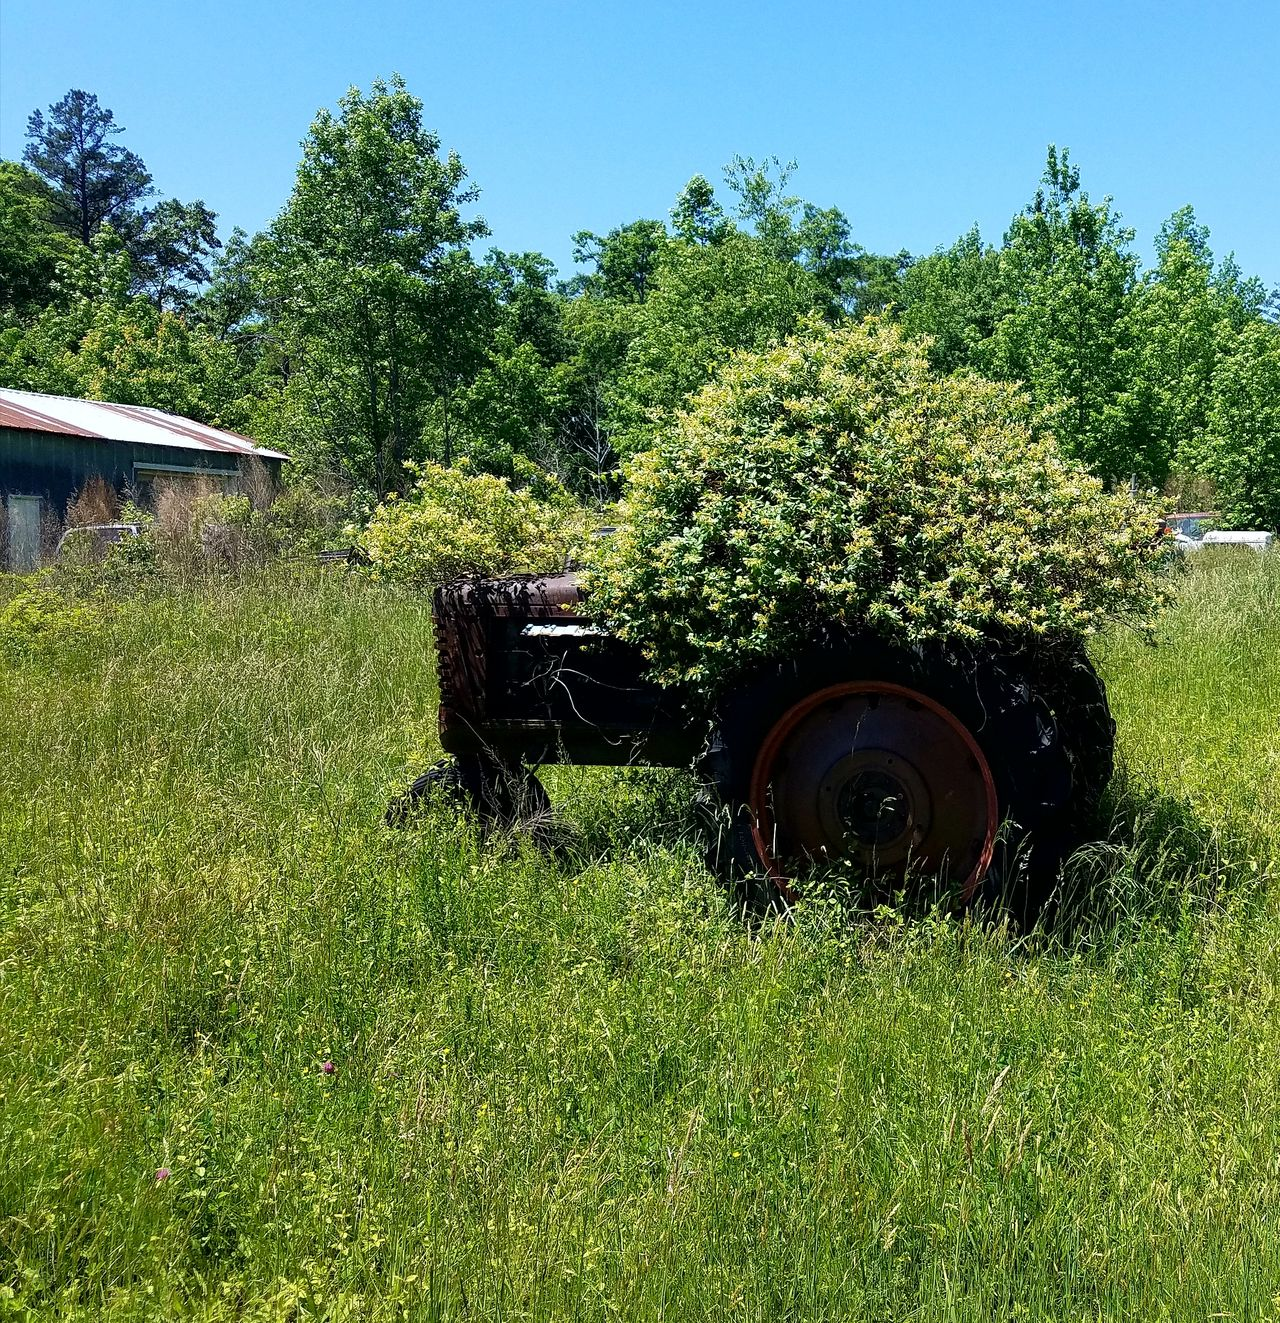 Grass Green Color Nature Day Growth Outdoors Tree No People Sky Rusty Metal Close-up Tractor Love The Great Outdoors With Adobe